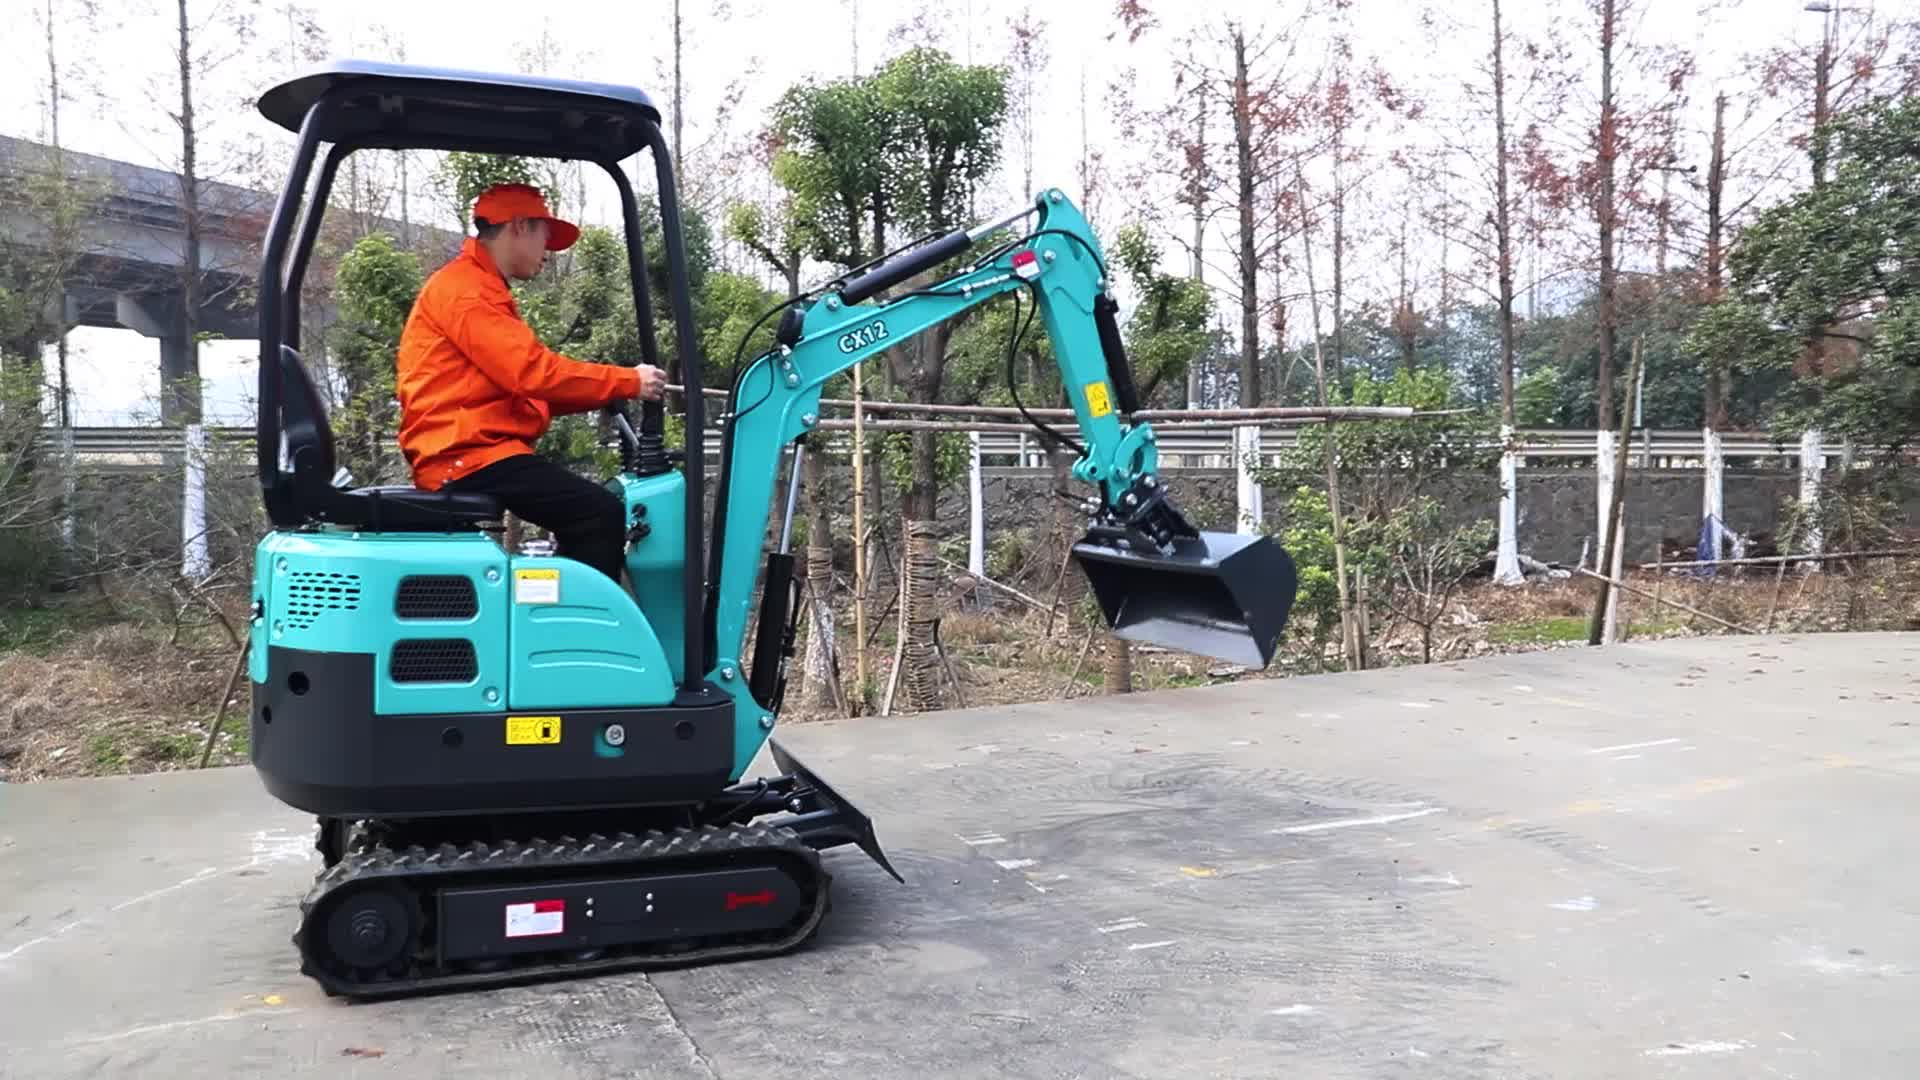 2020 NEW style Wholesale mini digger China engine prices small hydraulic excavator for sale